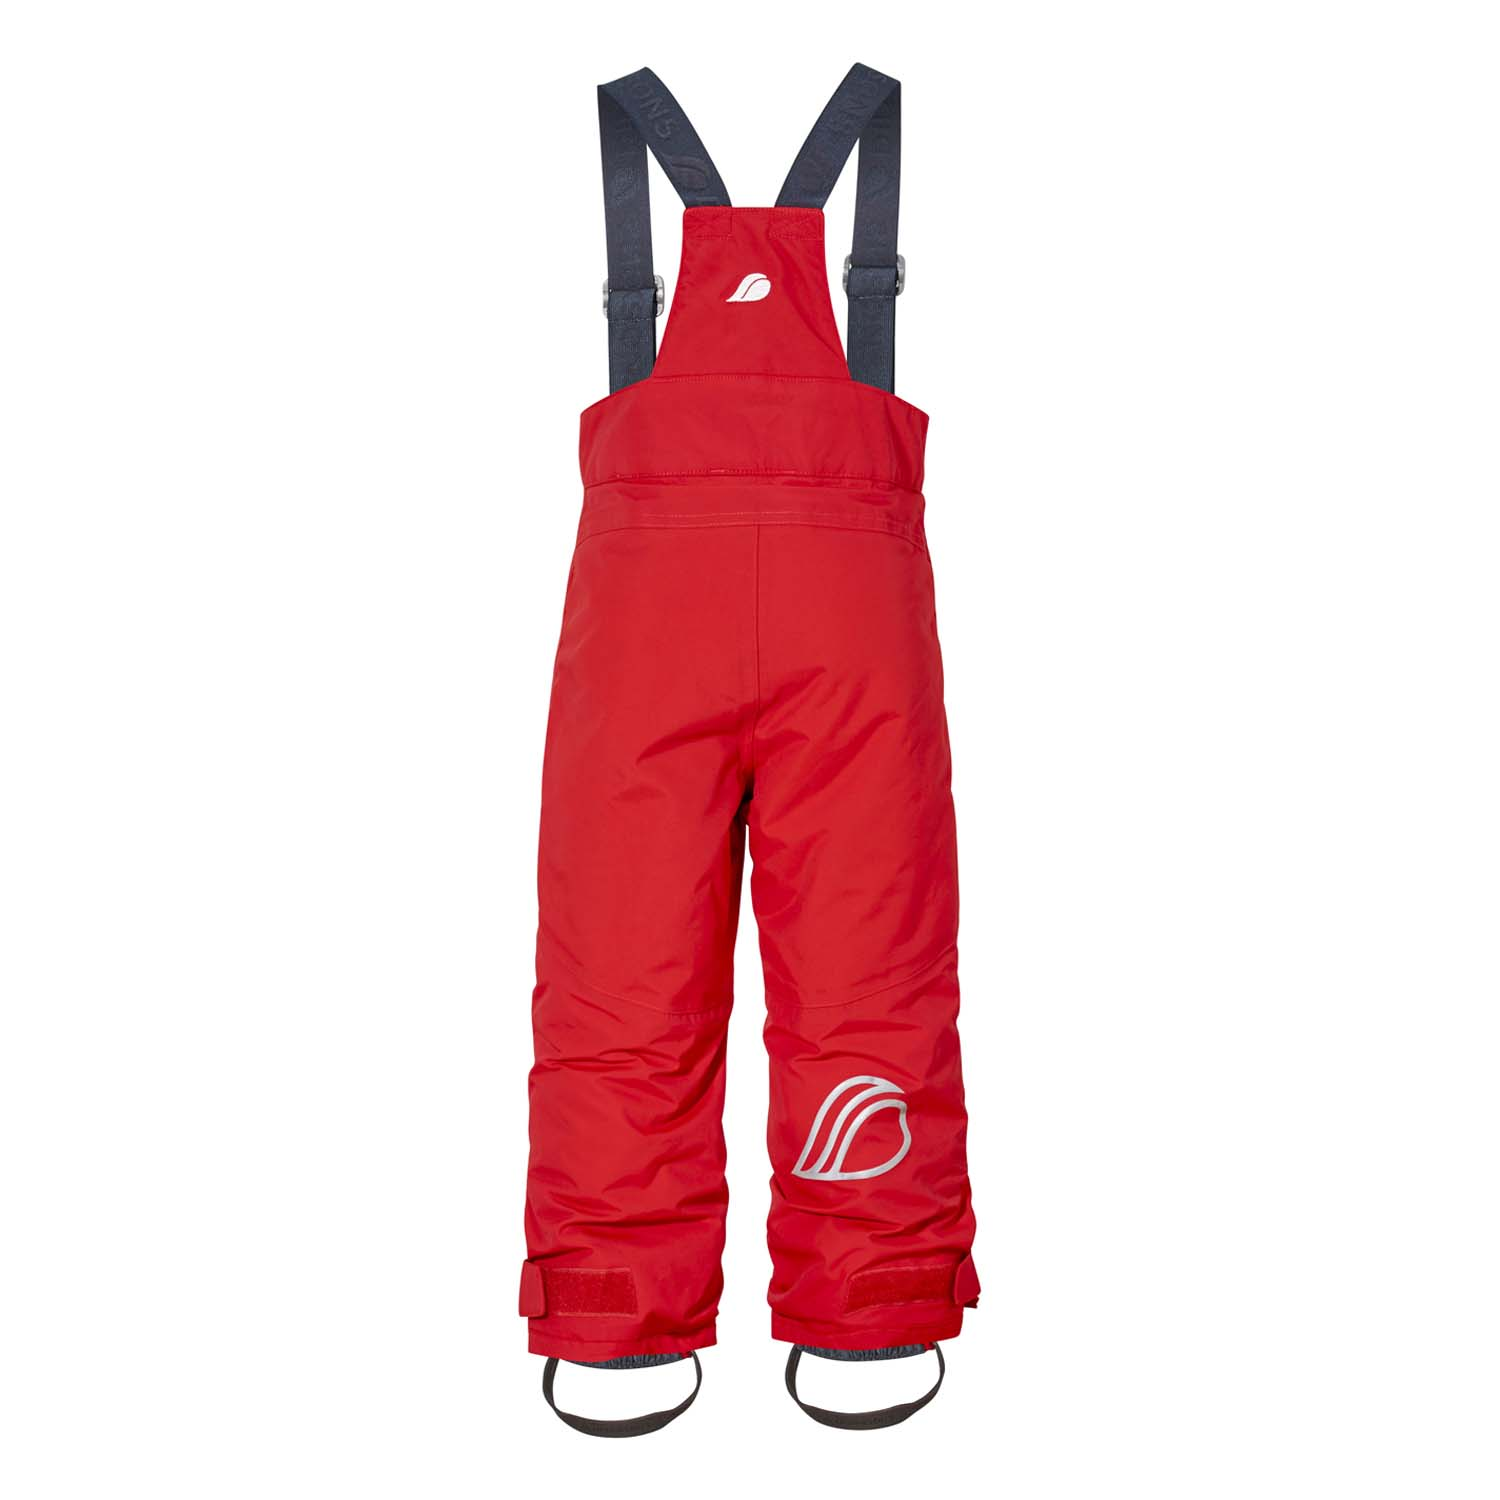 Didriksons Idre Kids Pant Chili Red 2020